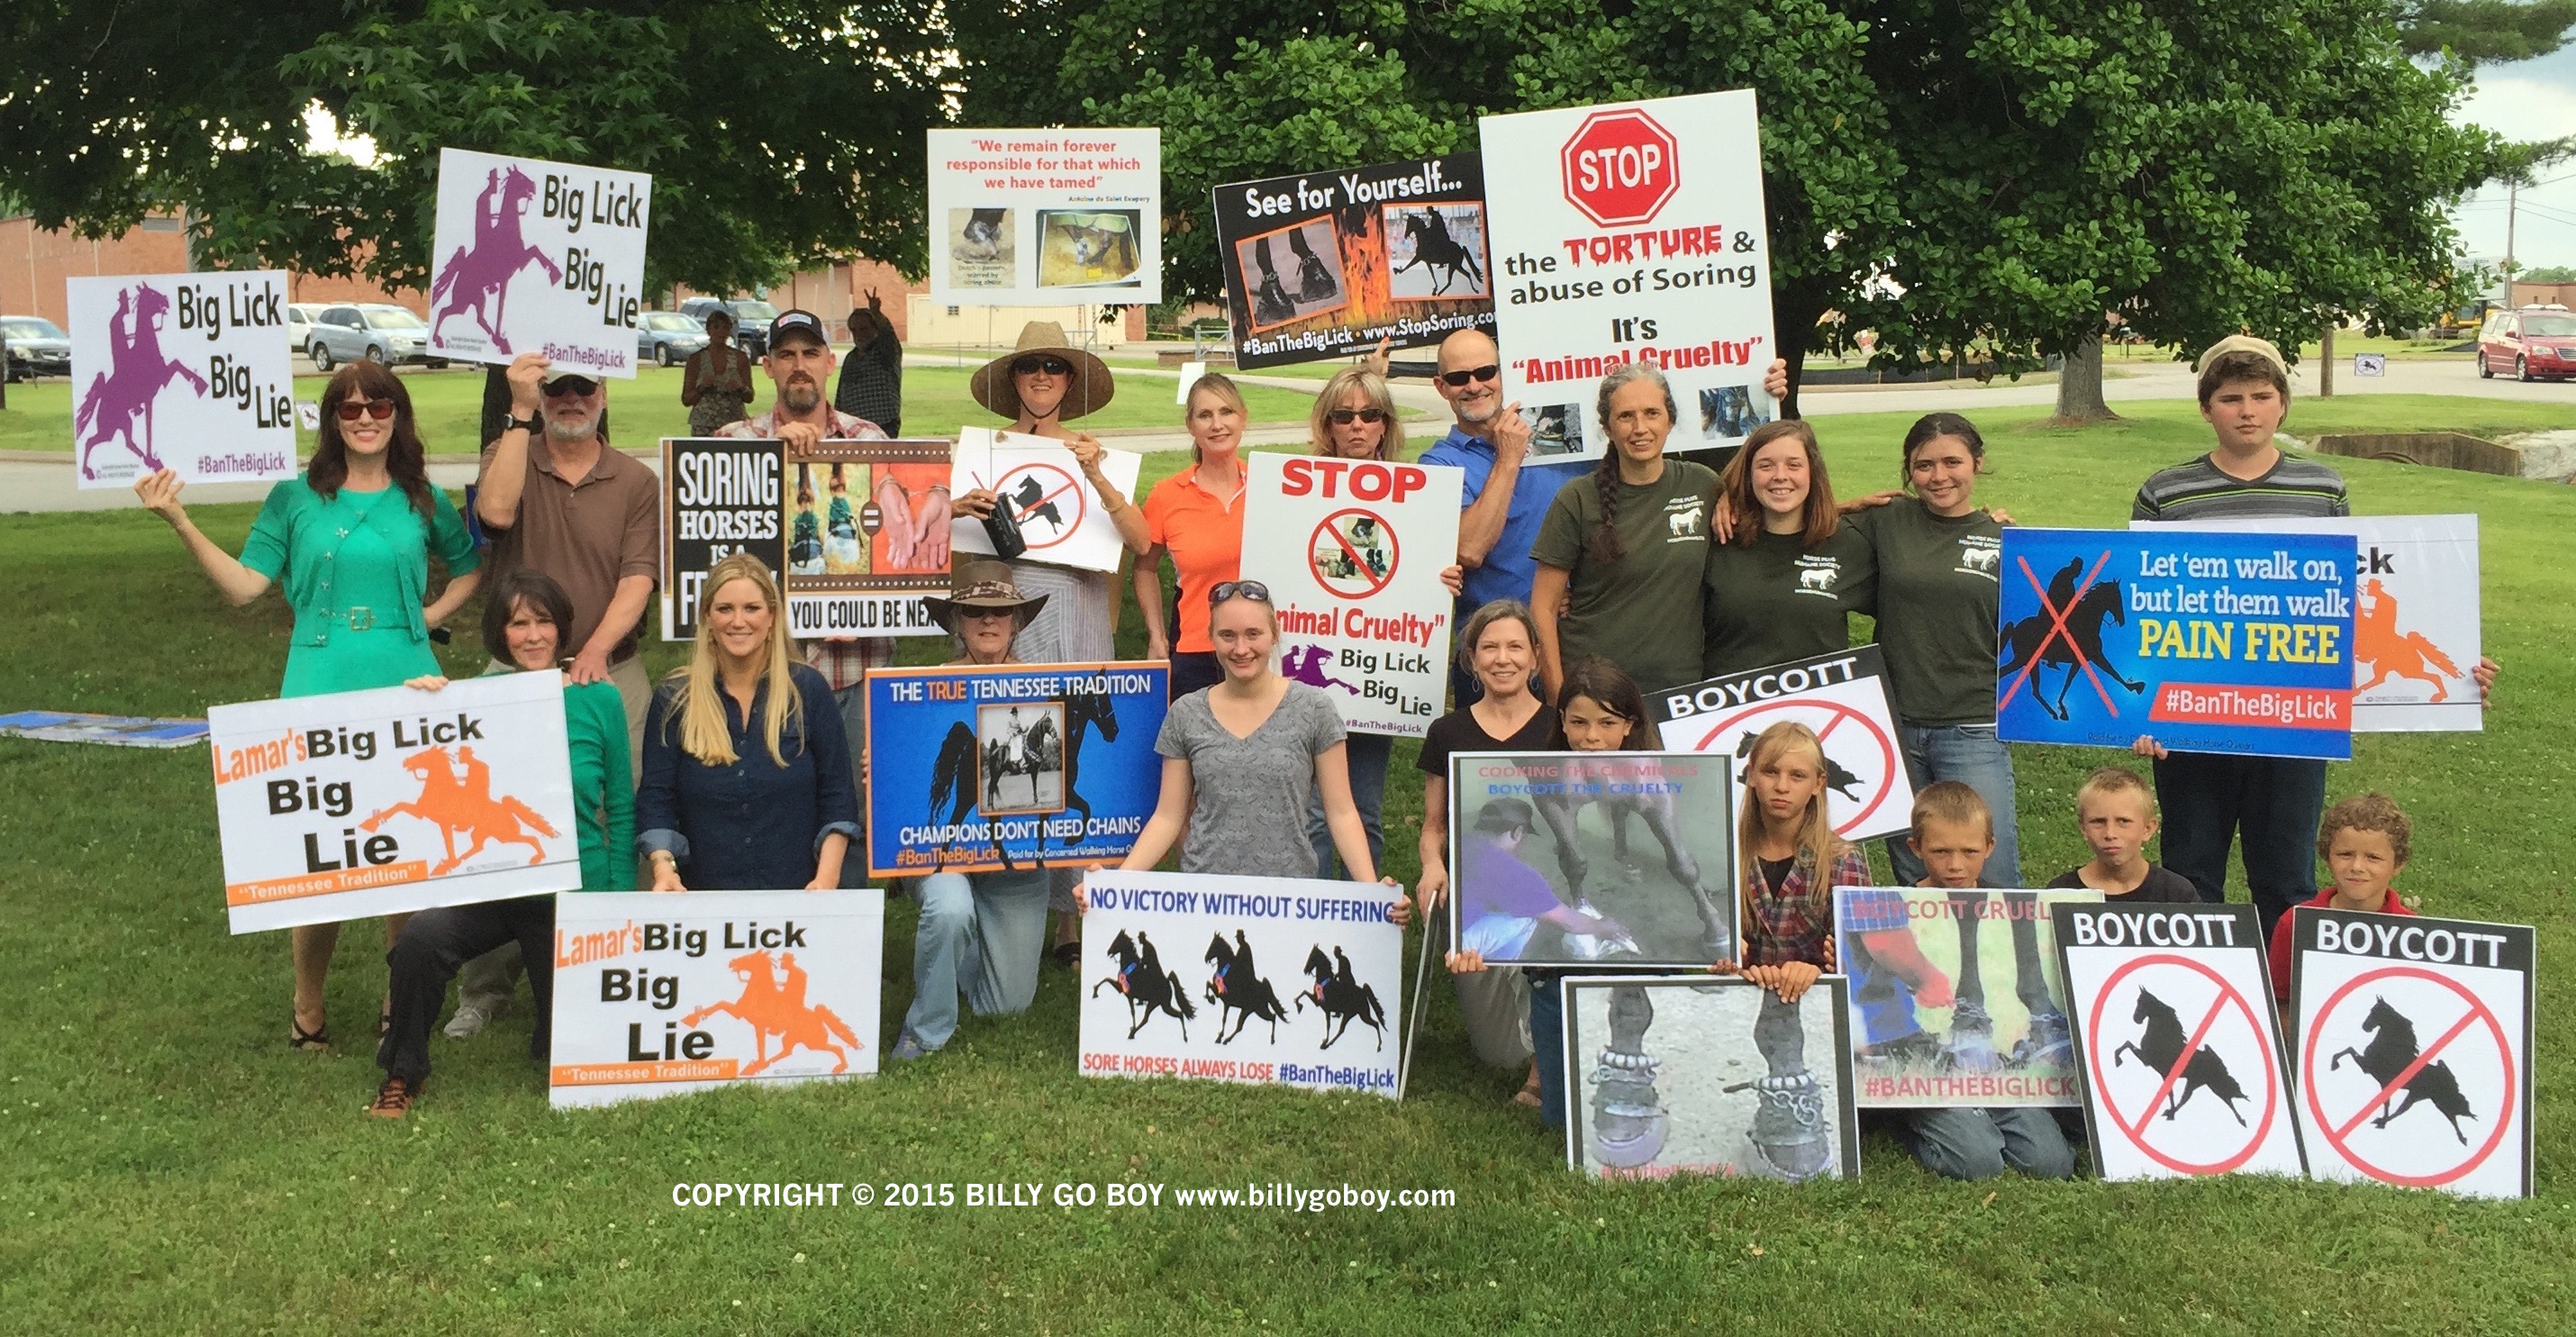 "PROUD AMERICANS EXERCISING THEIR CONSTITUTIONAL RIGHTS TO PROTEST ANIMAL CRUELTY OF ""BIG LICK"" TENNESSEE WALKING HORSES"